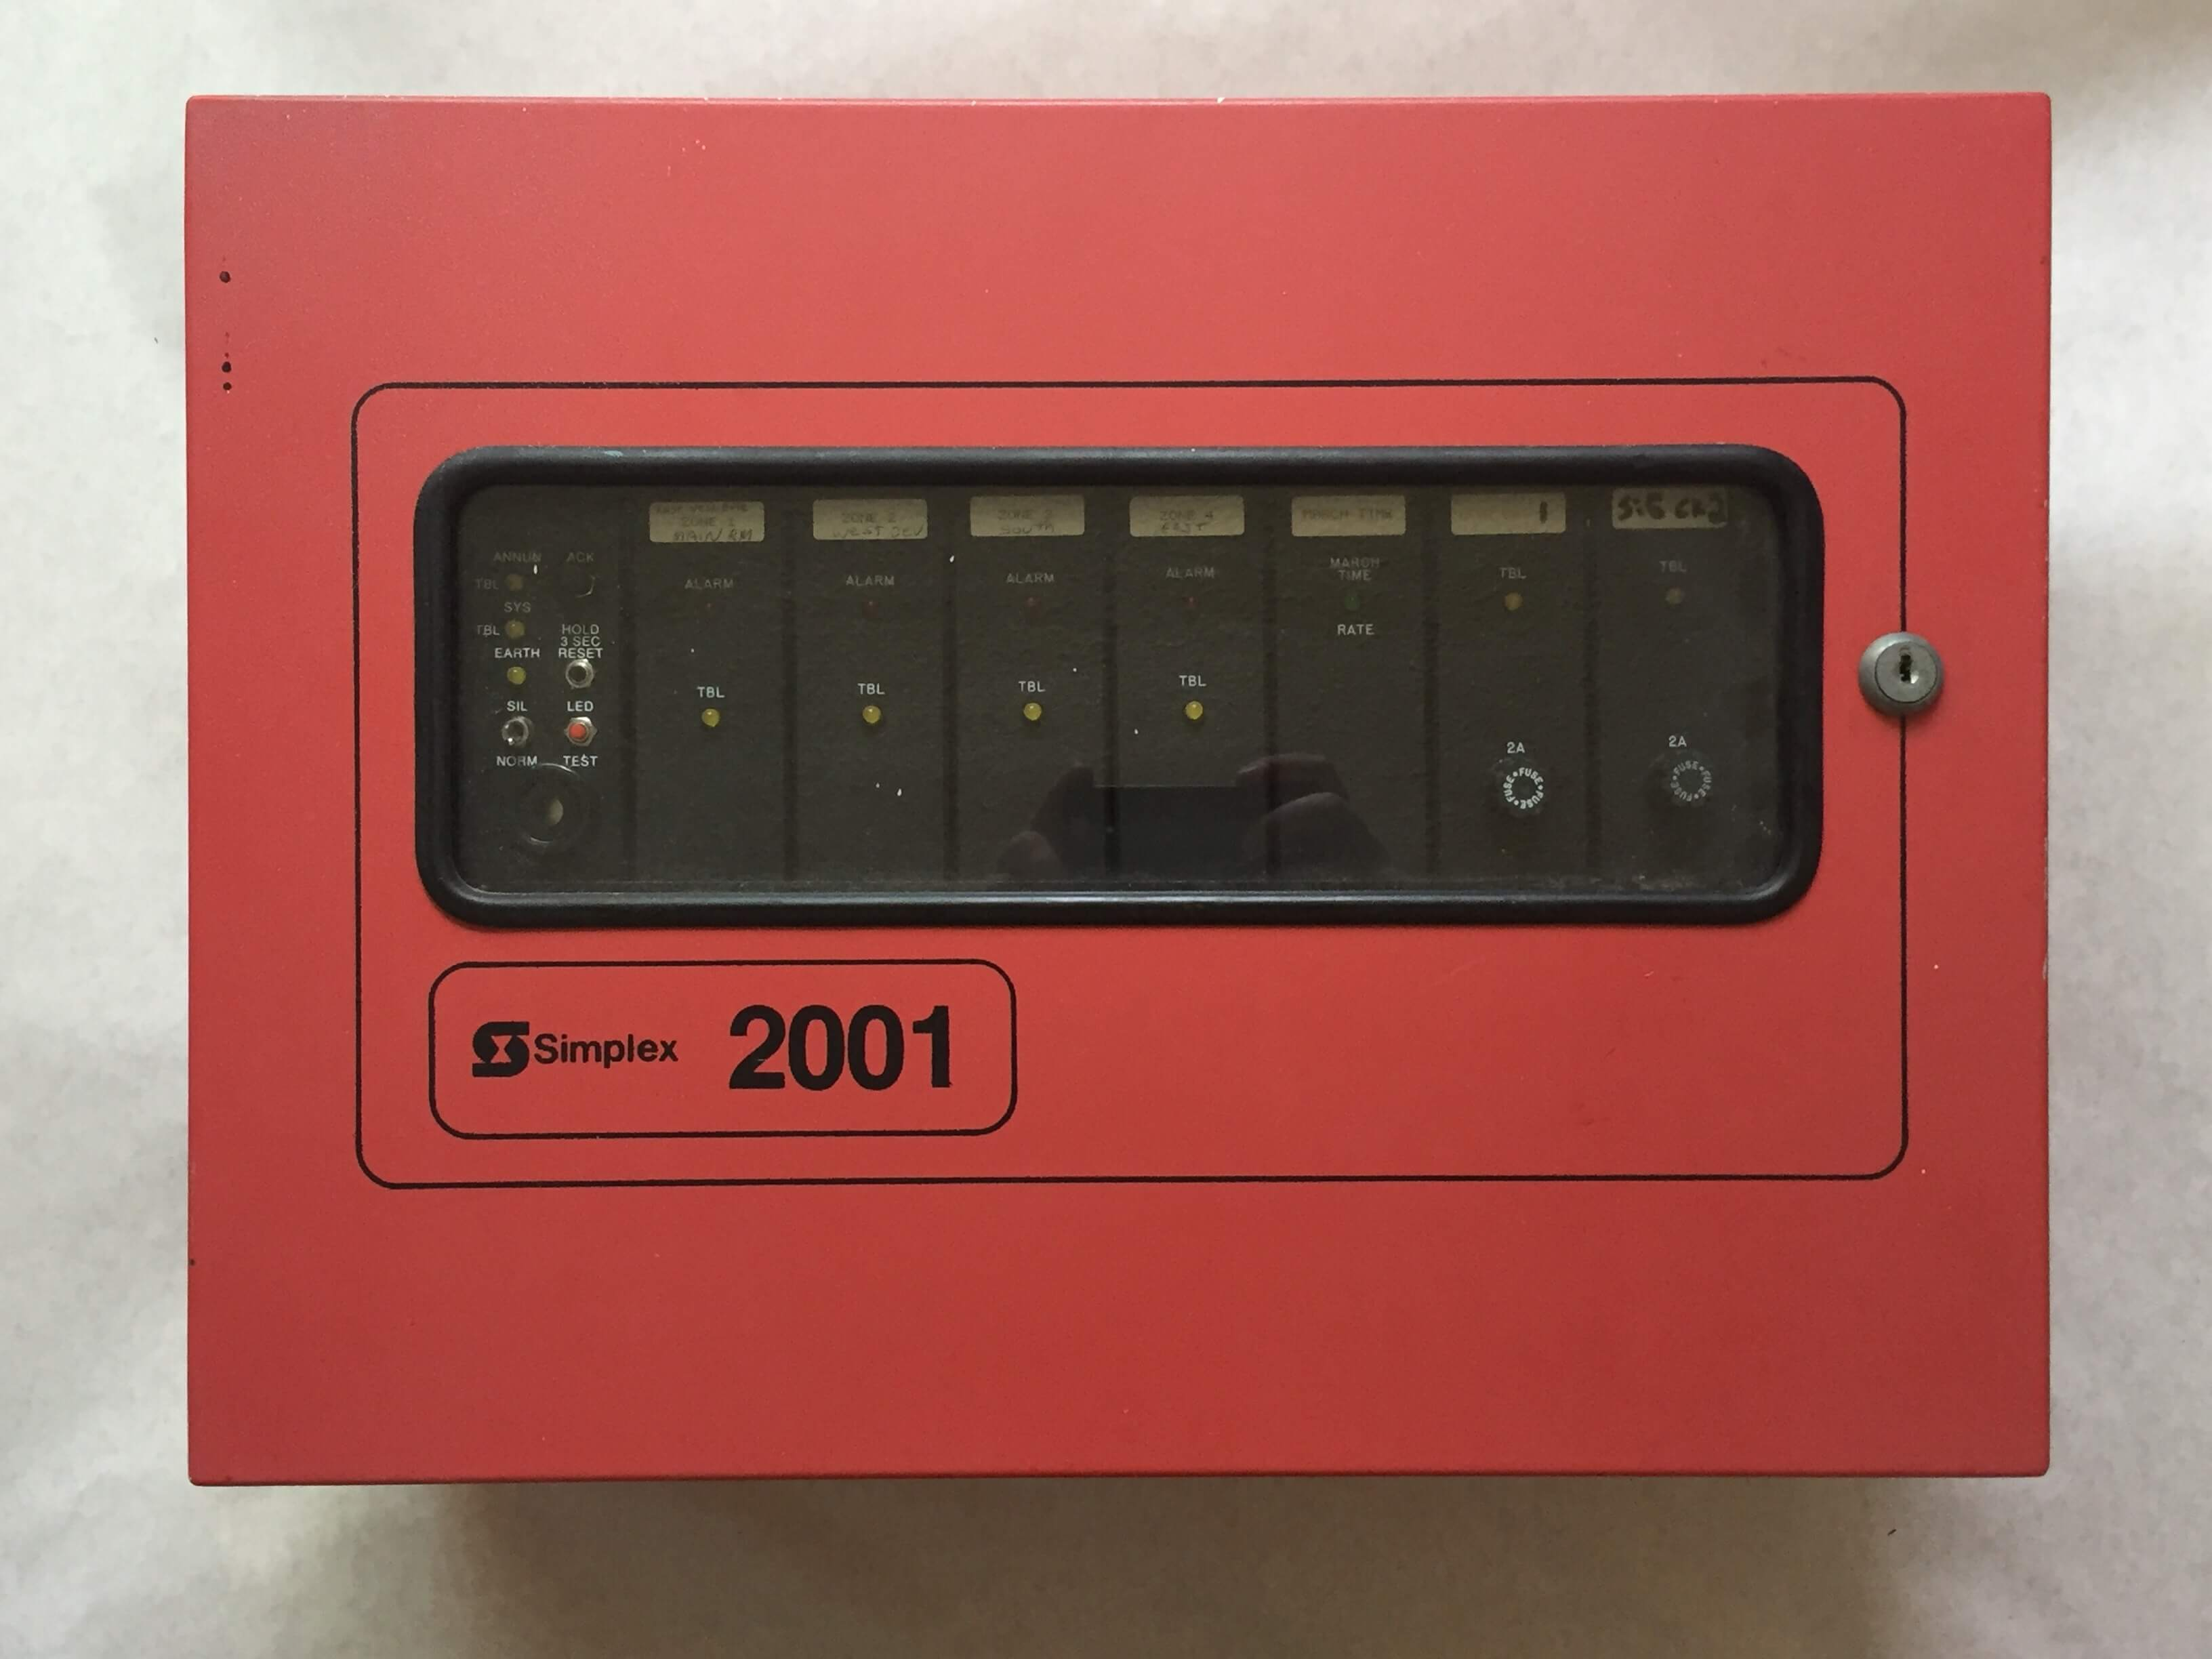 Simplex 20013080  FireAlarms   tv     jjinc24U8oL0 s Fire Alarm Collection  Pictures  Videos  Info